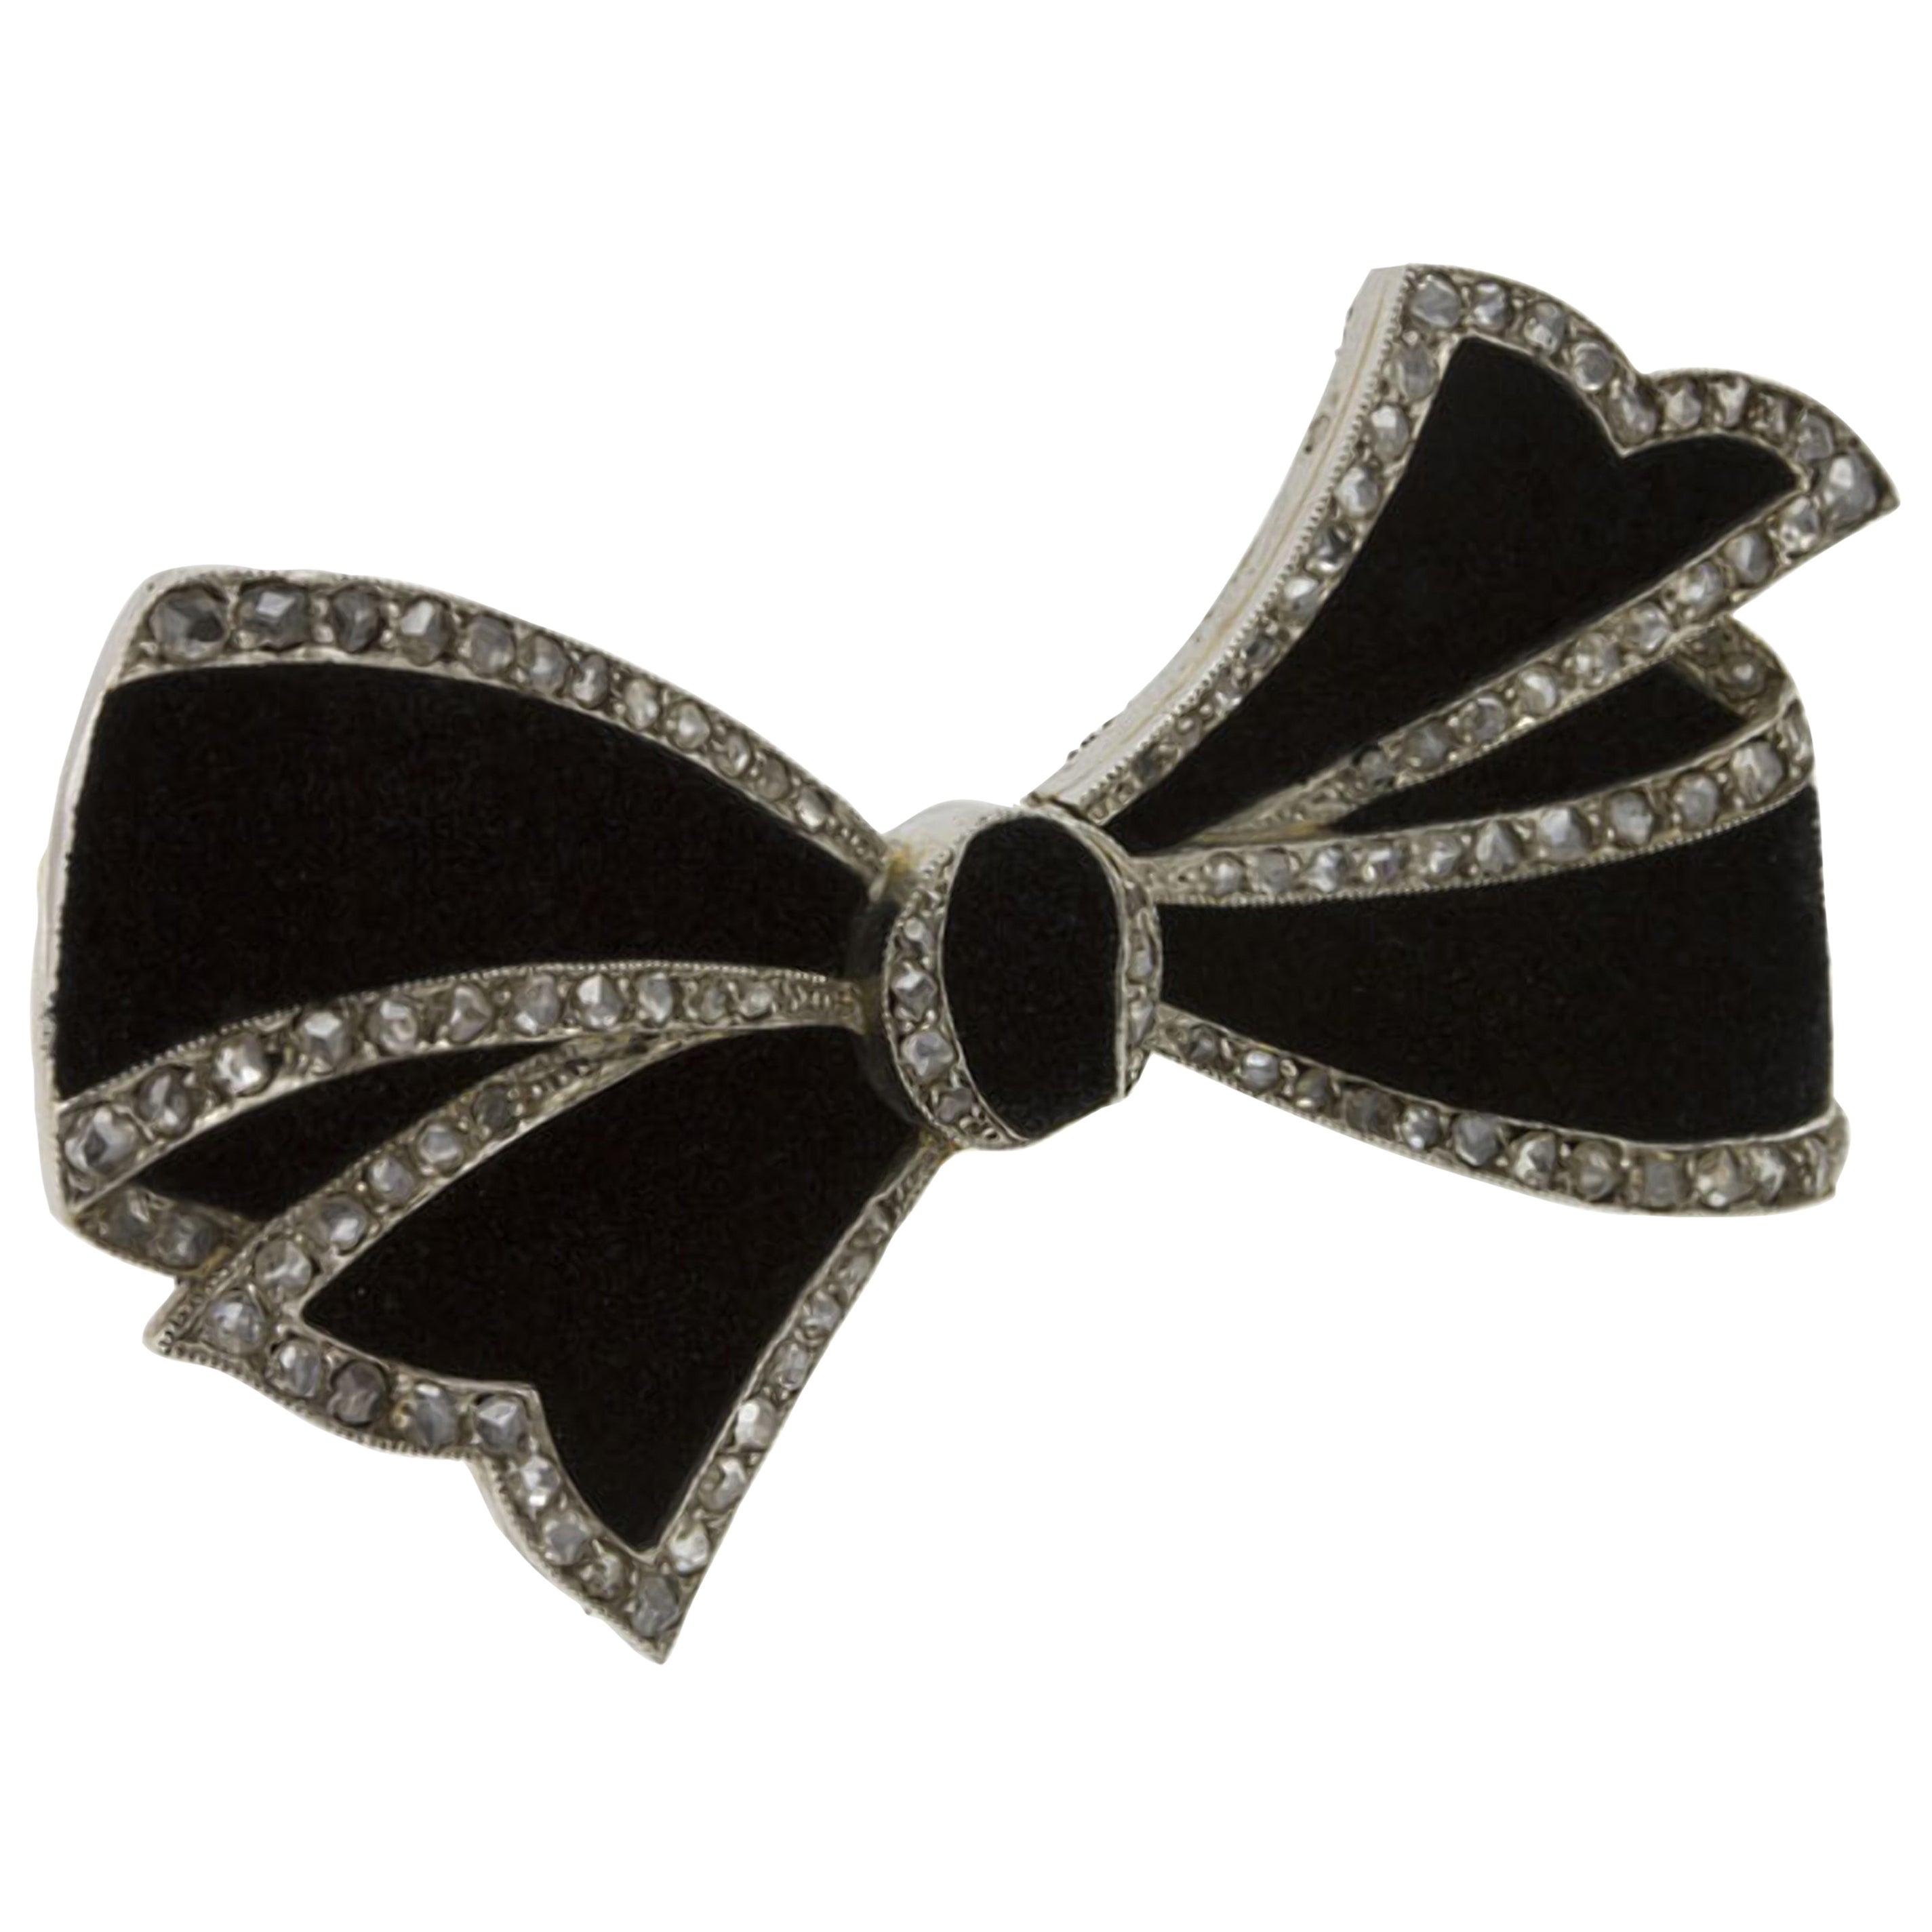 Belle Epoque Diamond Bow Brooch Attributed to Cartier